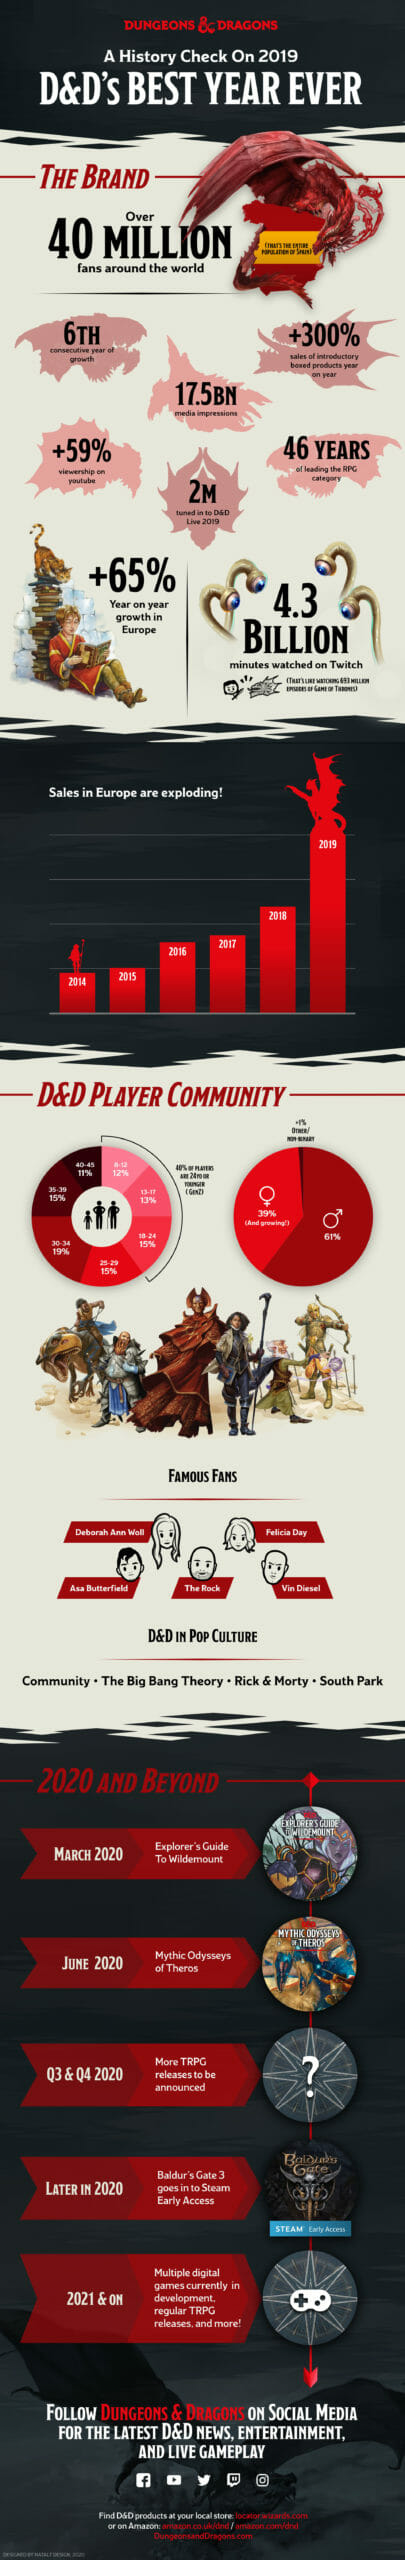 DD-2019-figures-infographic-1920w-scaled.jpg